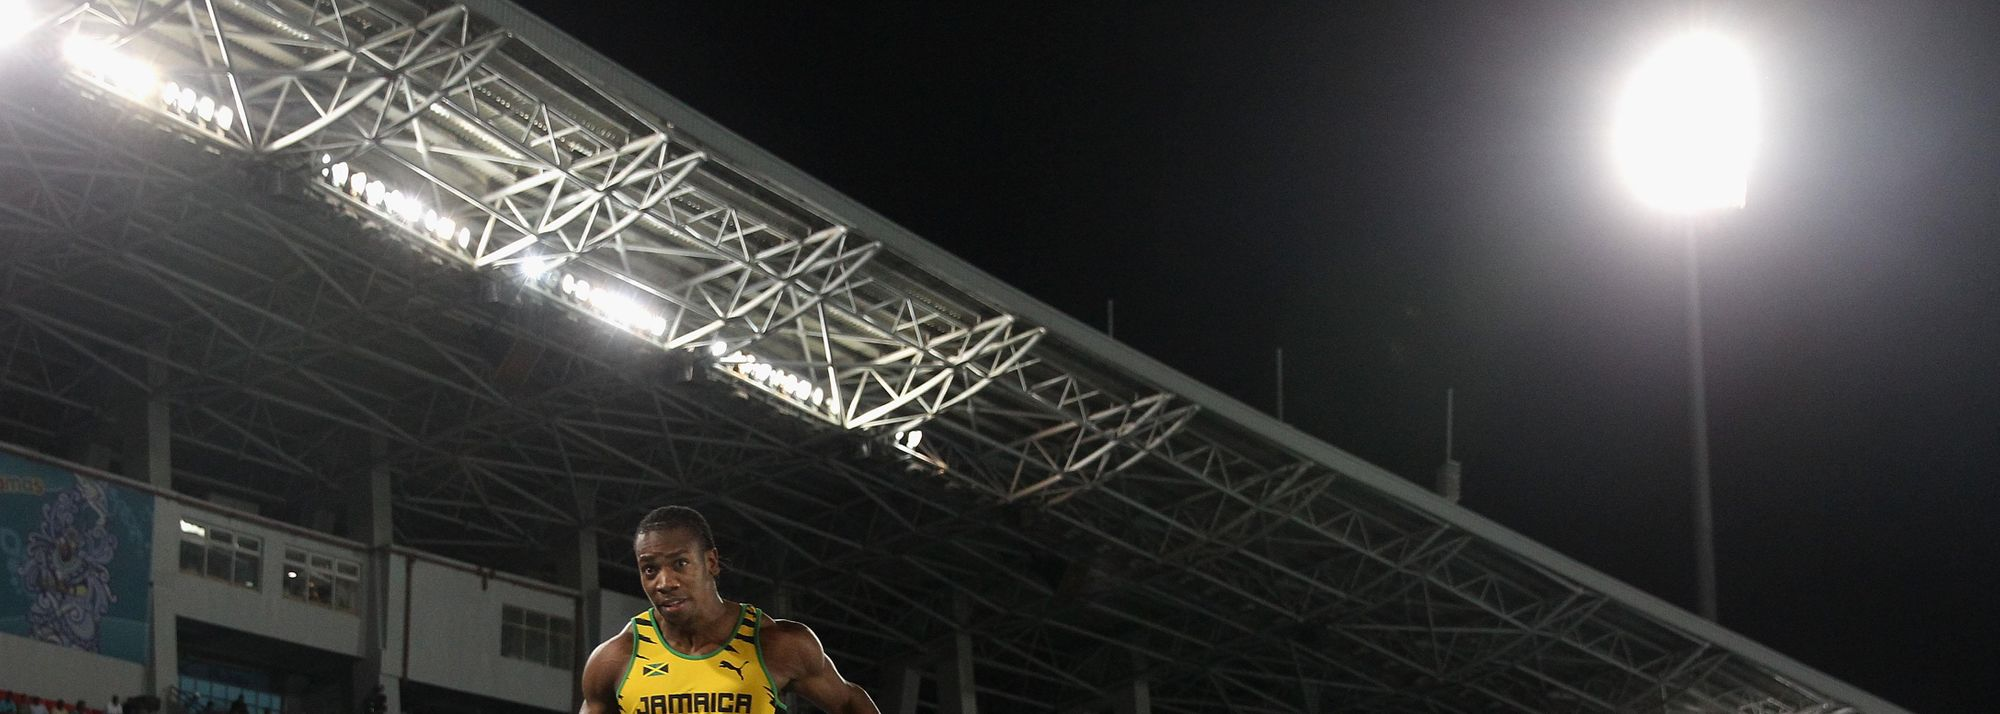 US sports like to honour their top competitors with an MVP accolade – most valuable player. But maybe Yohan Blake should get an MVT honour – which could stand for most valuable teammate – after his heroics at the inaugural IAAF World Relays this weekend.